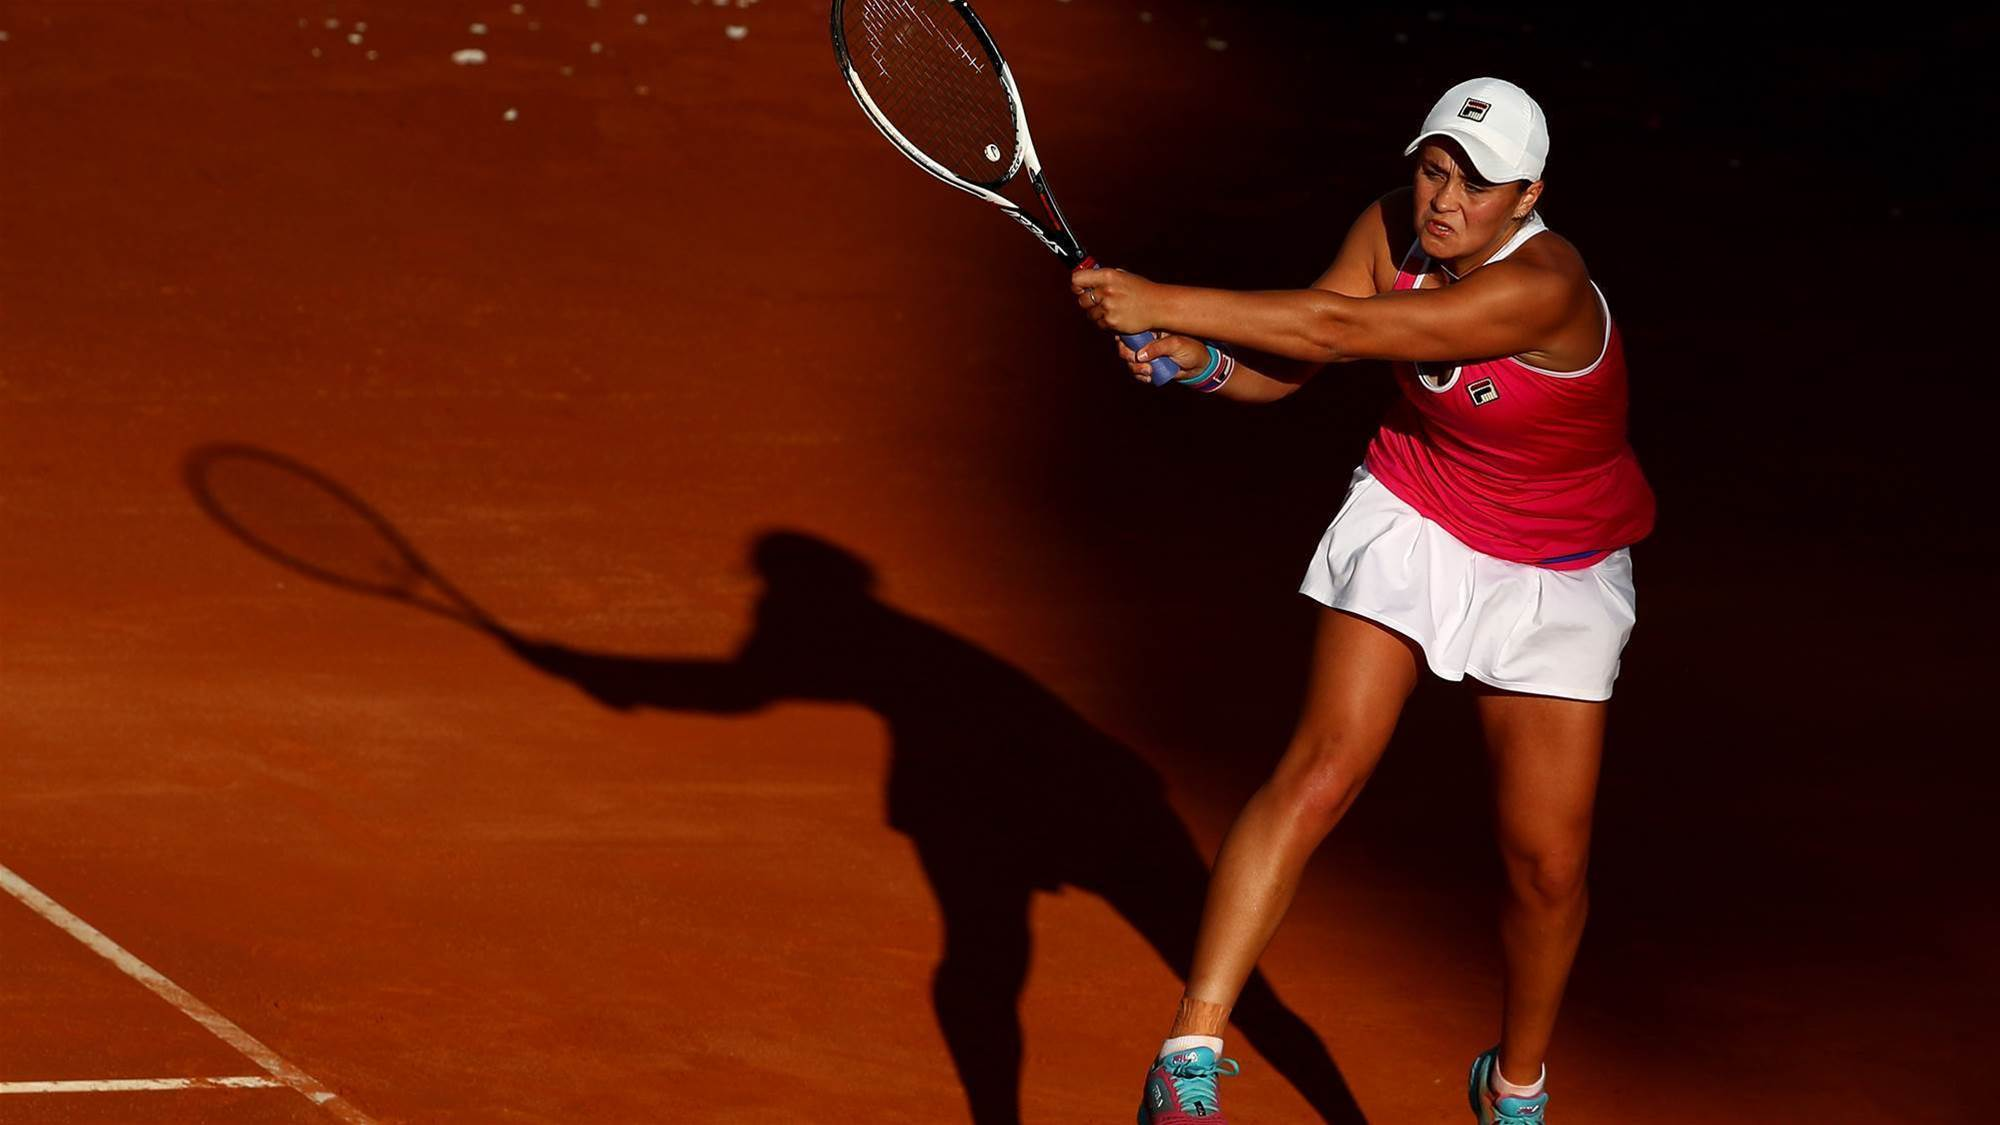 Barty forced to retire in semi